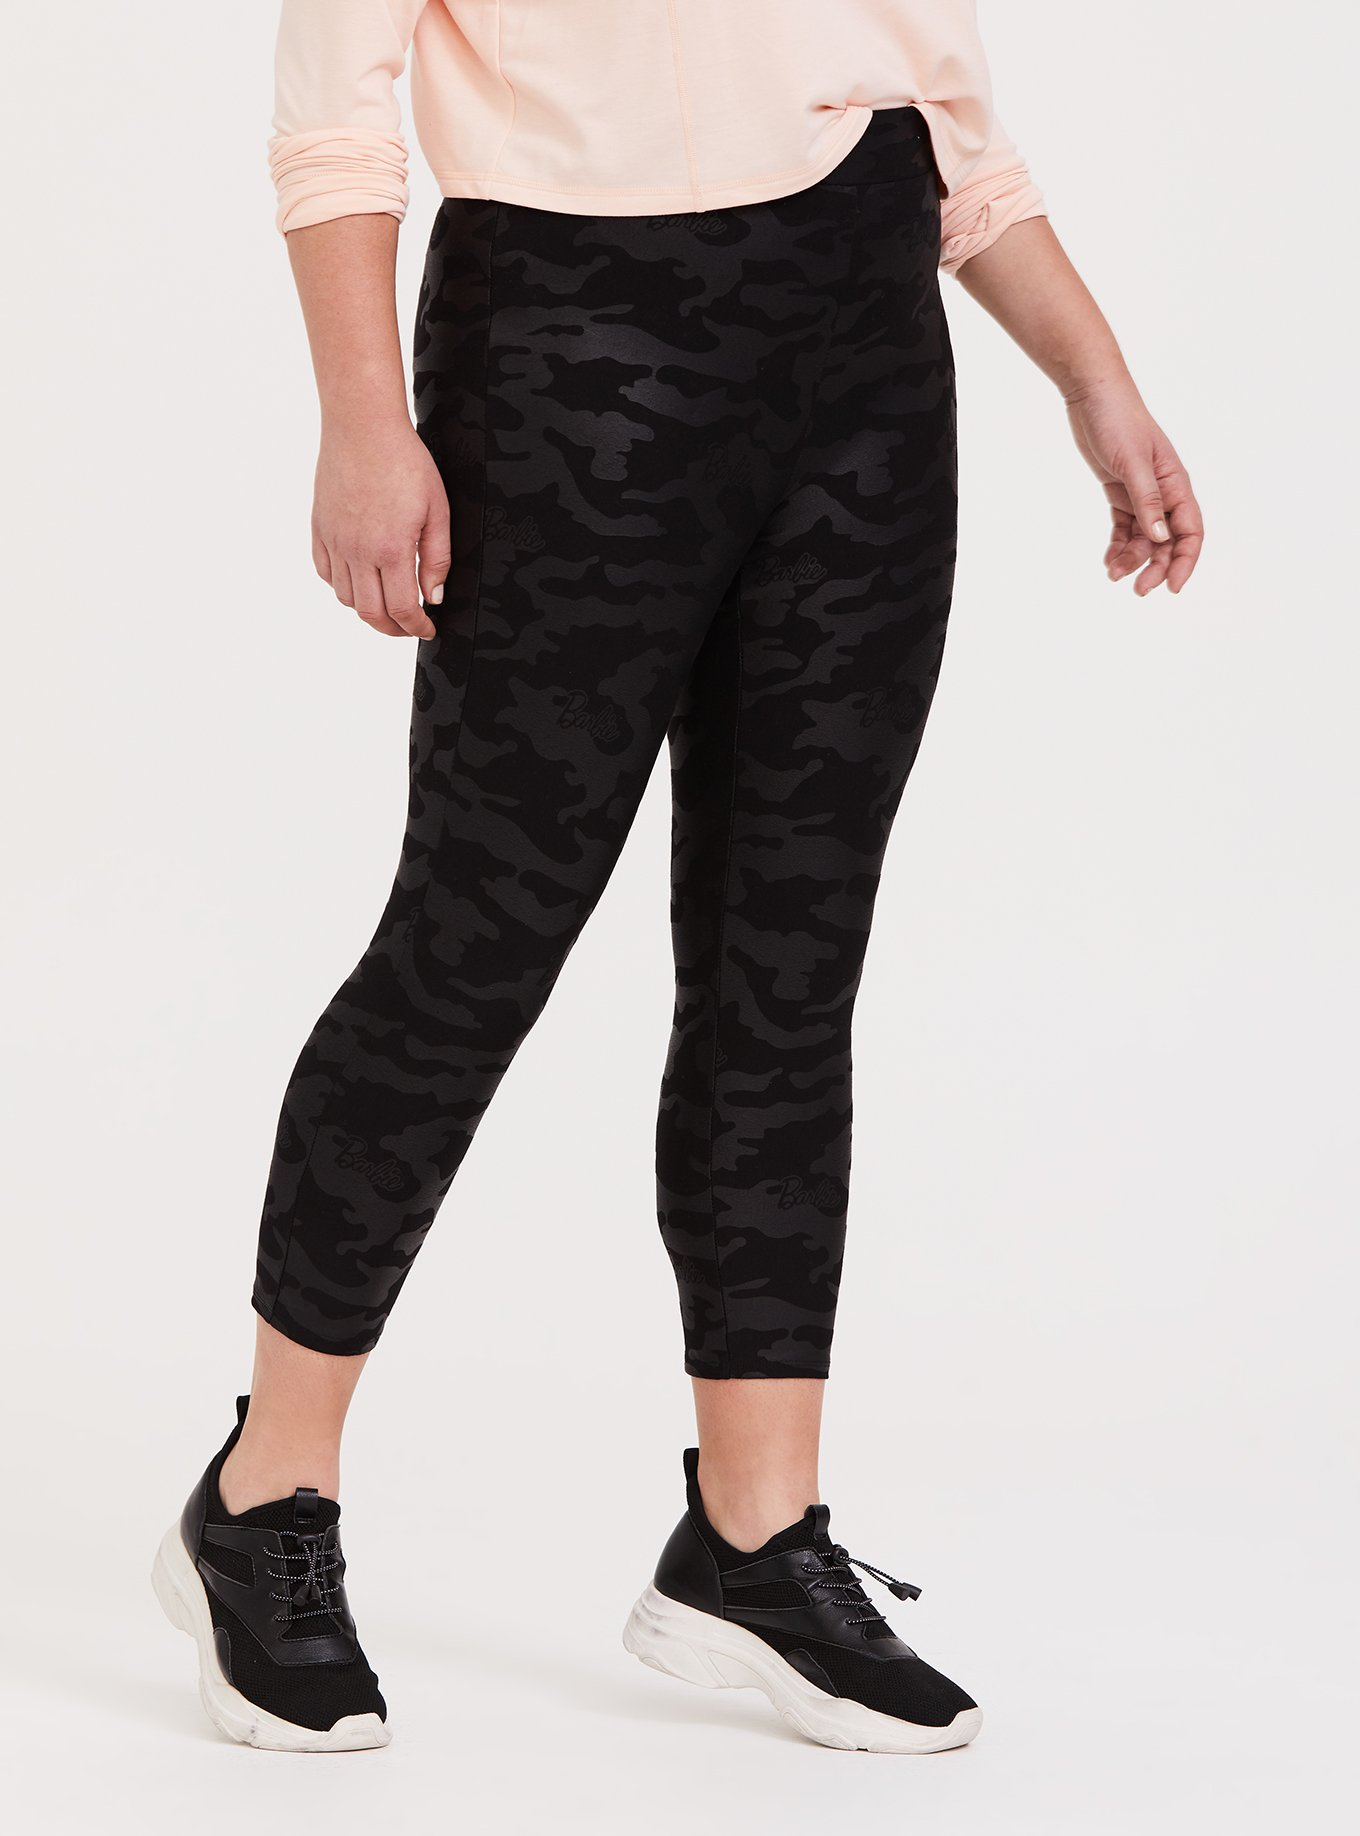 Barbie Black Camo Crop Legging by Torrid